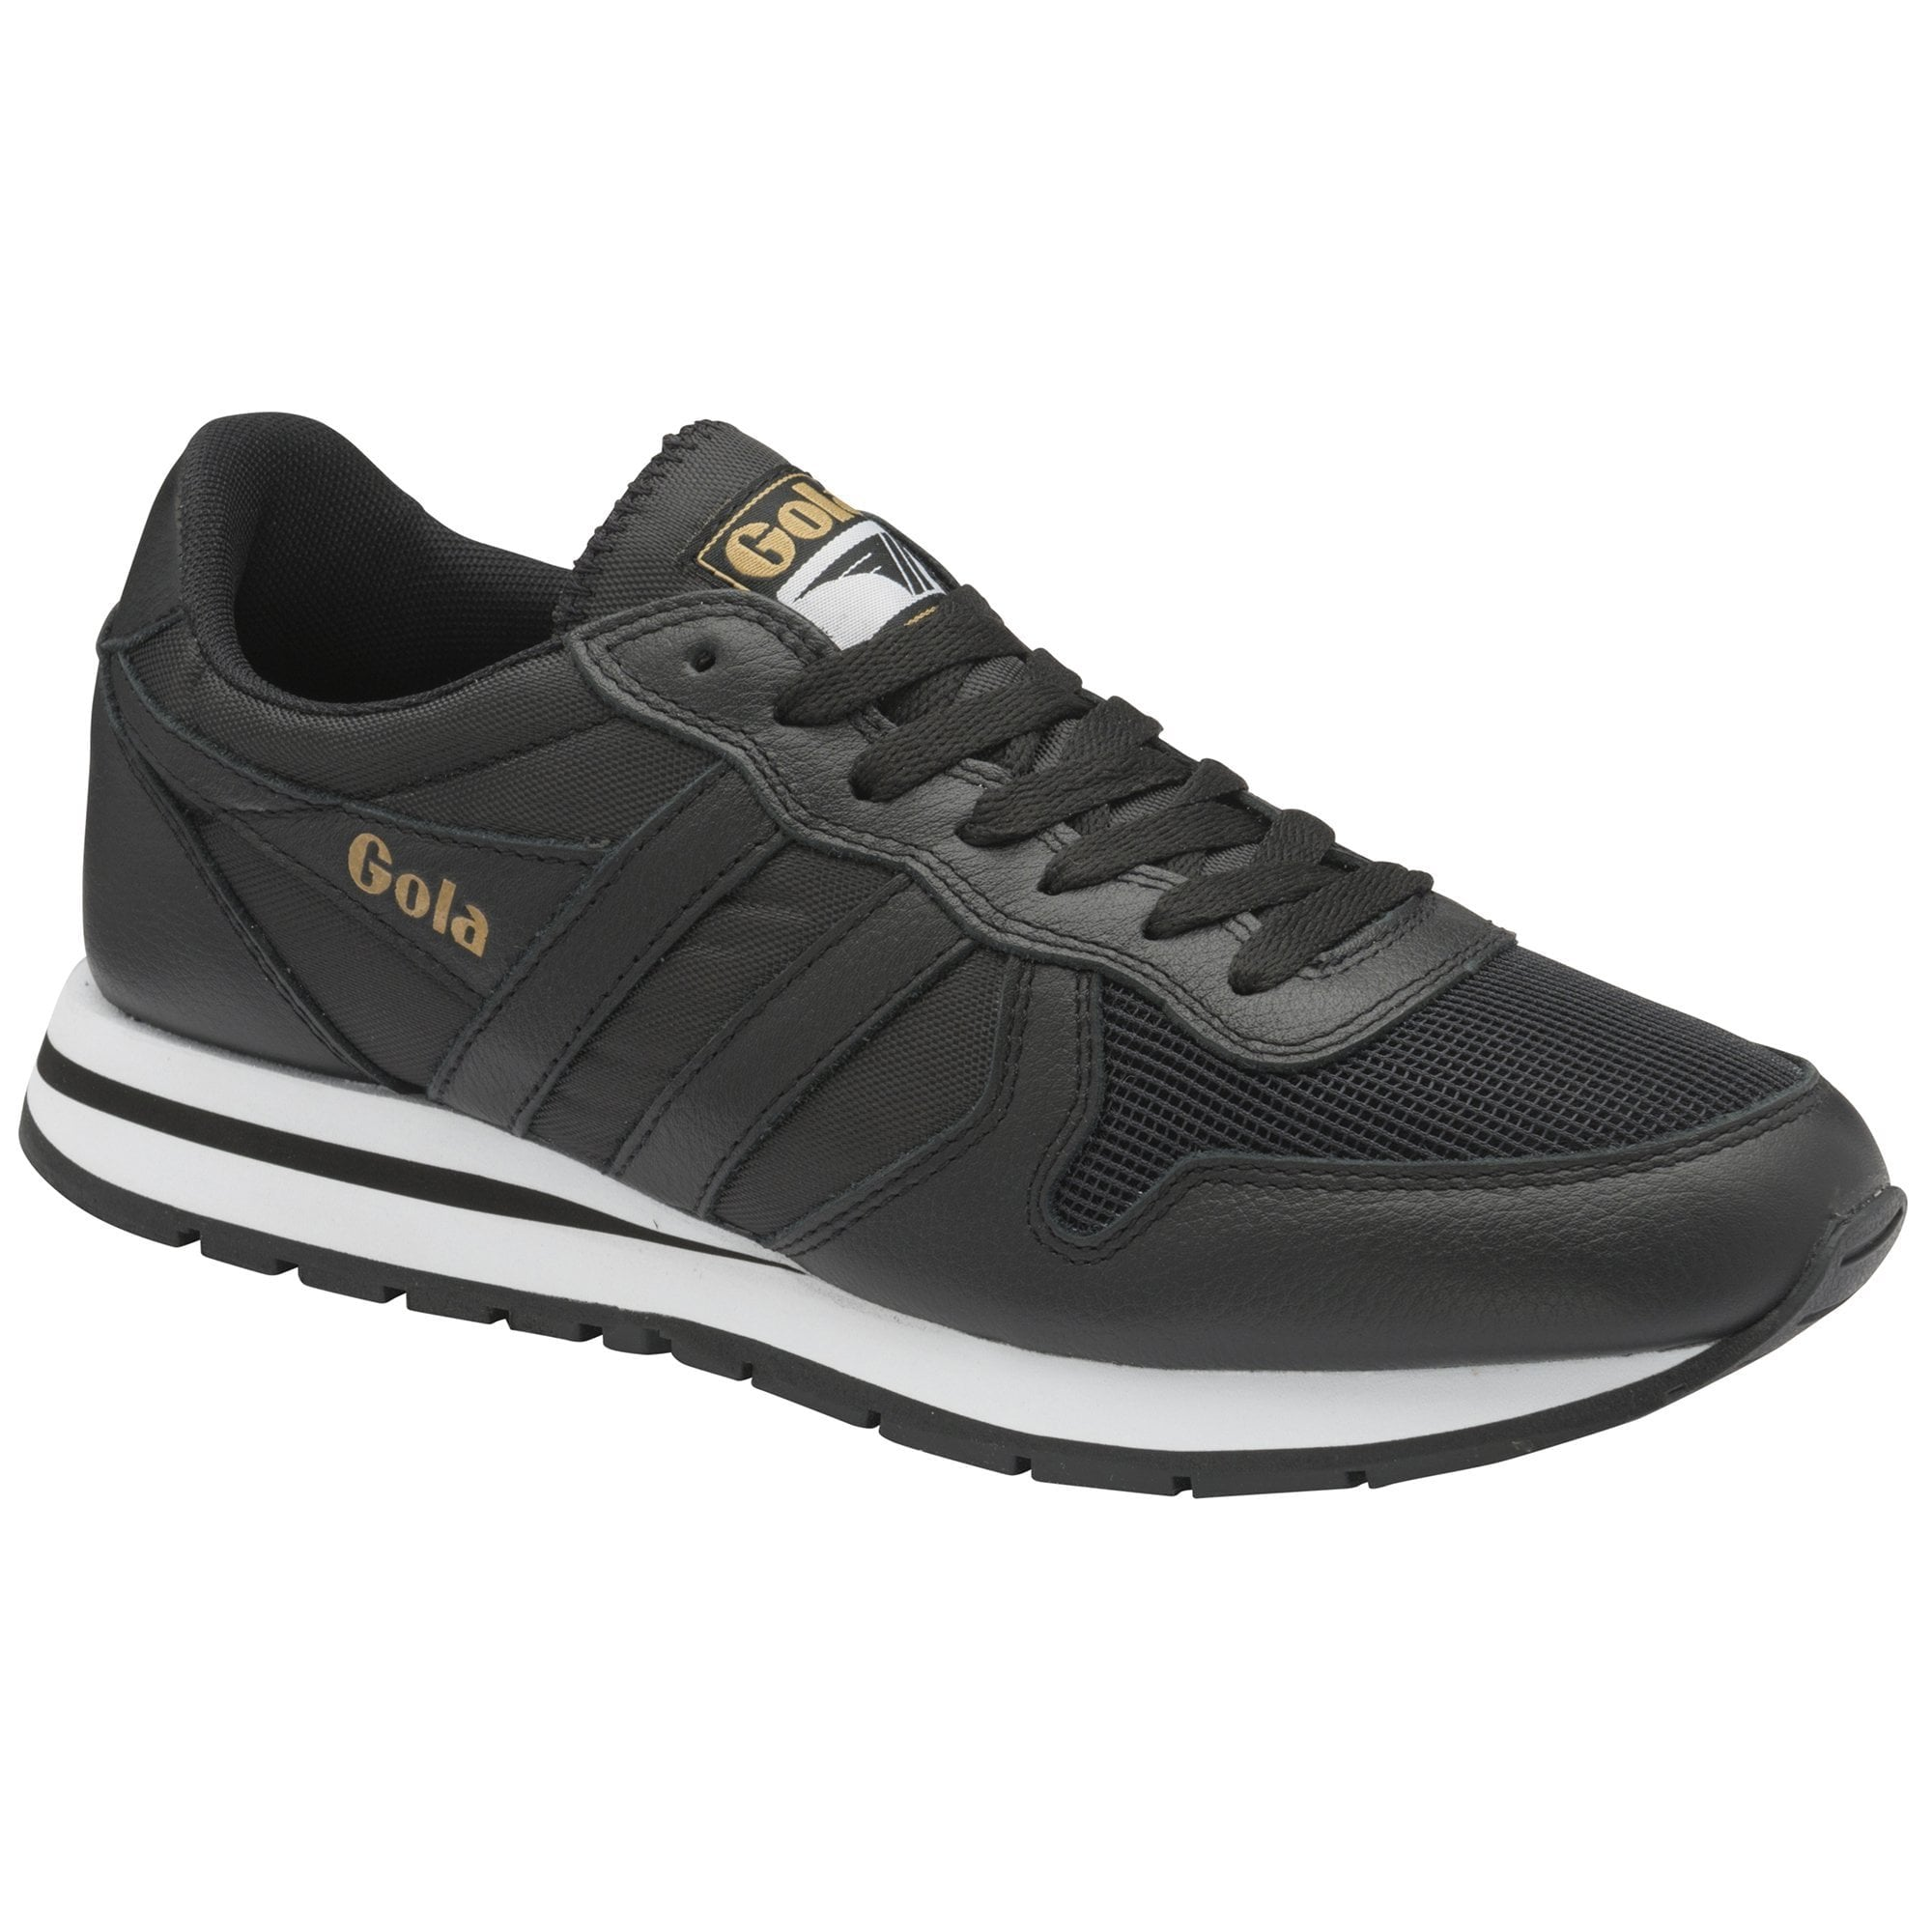 Men's Daytona Leather Sneakers